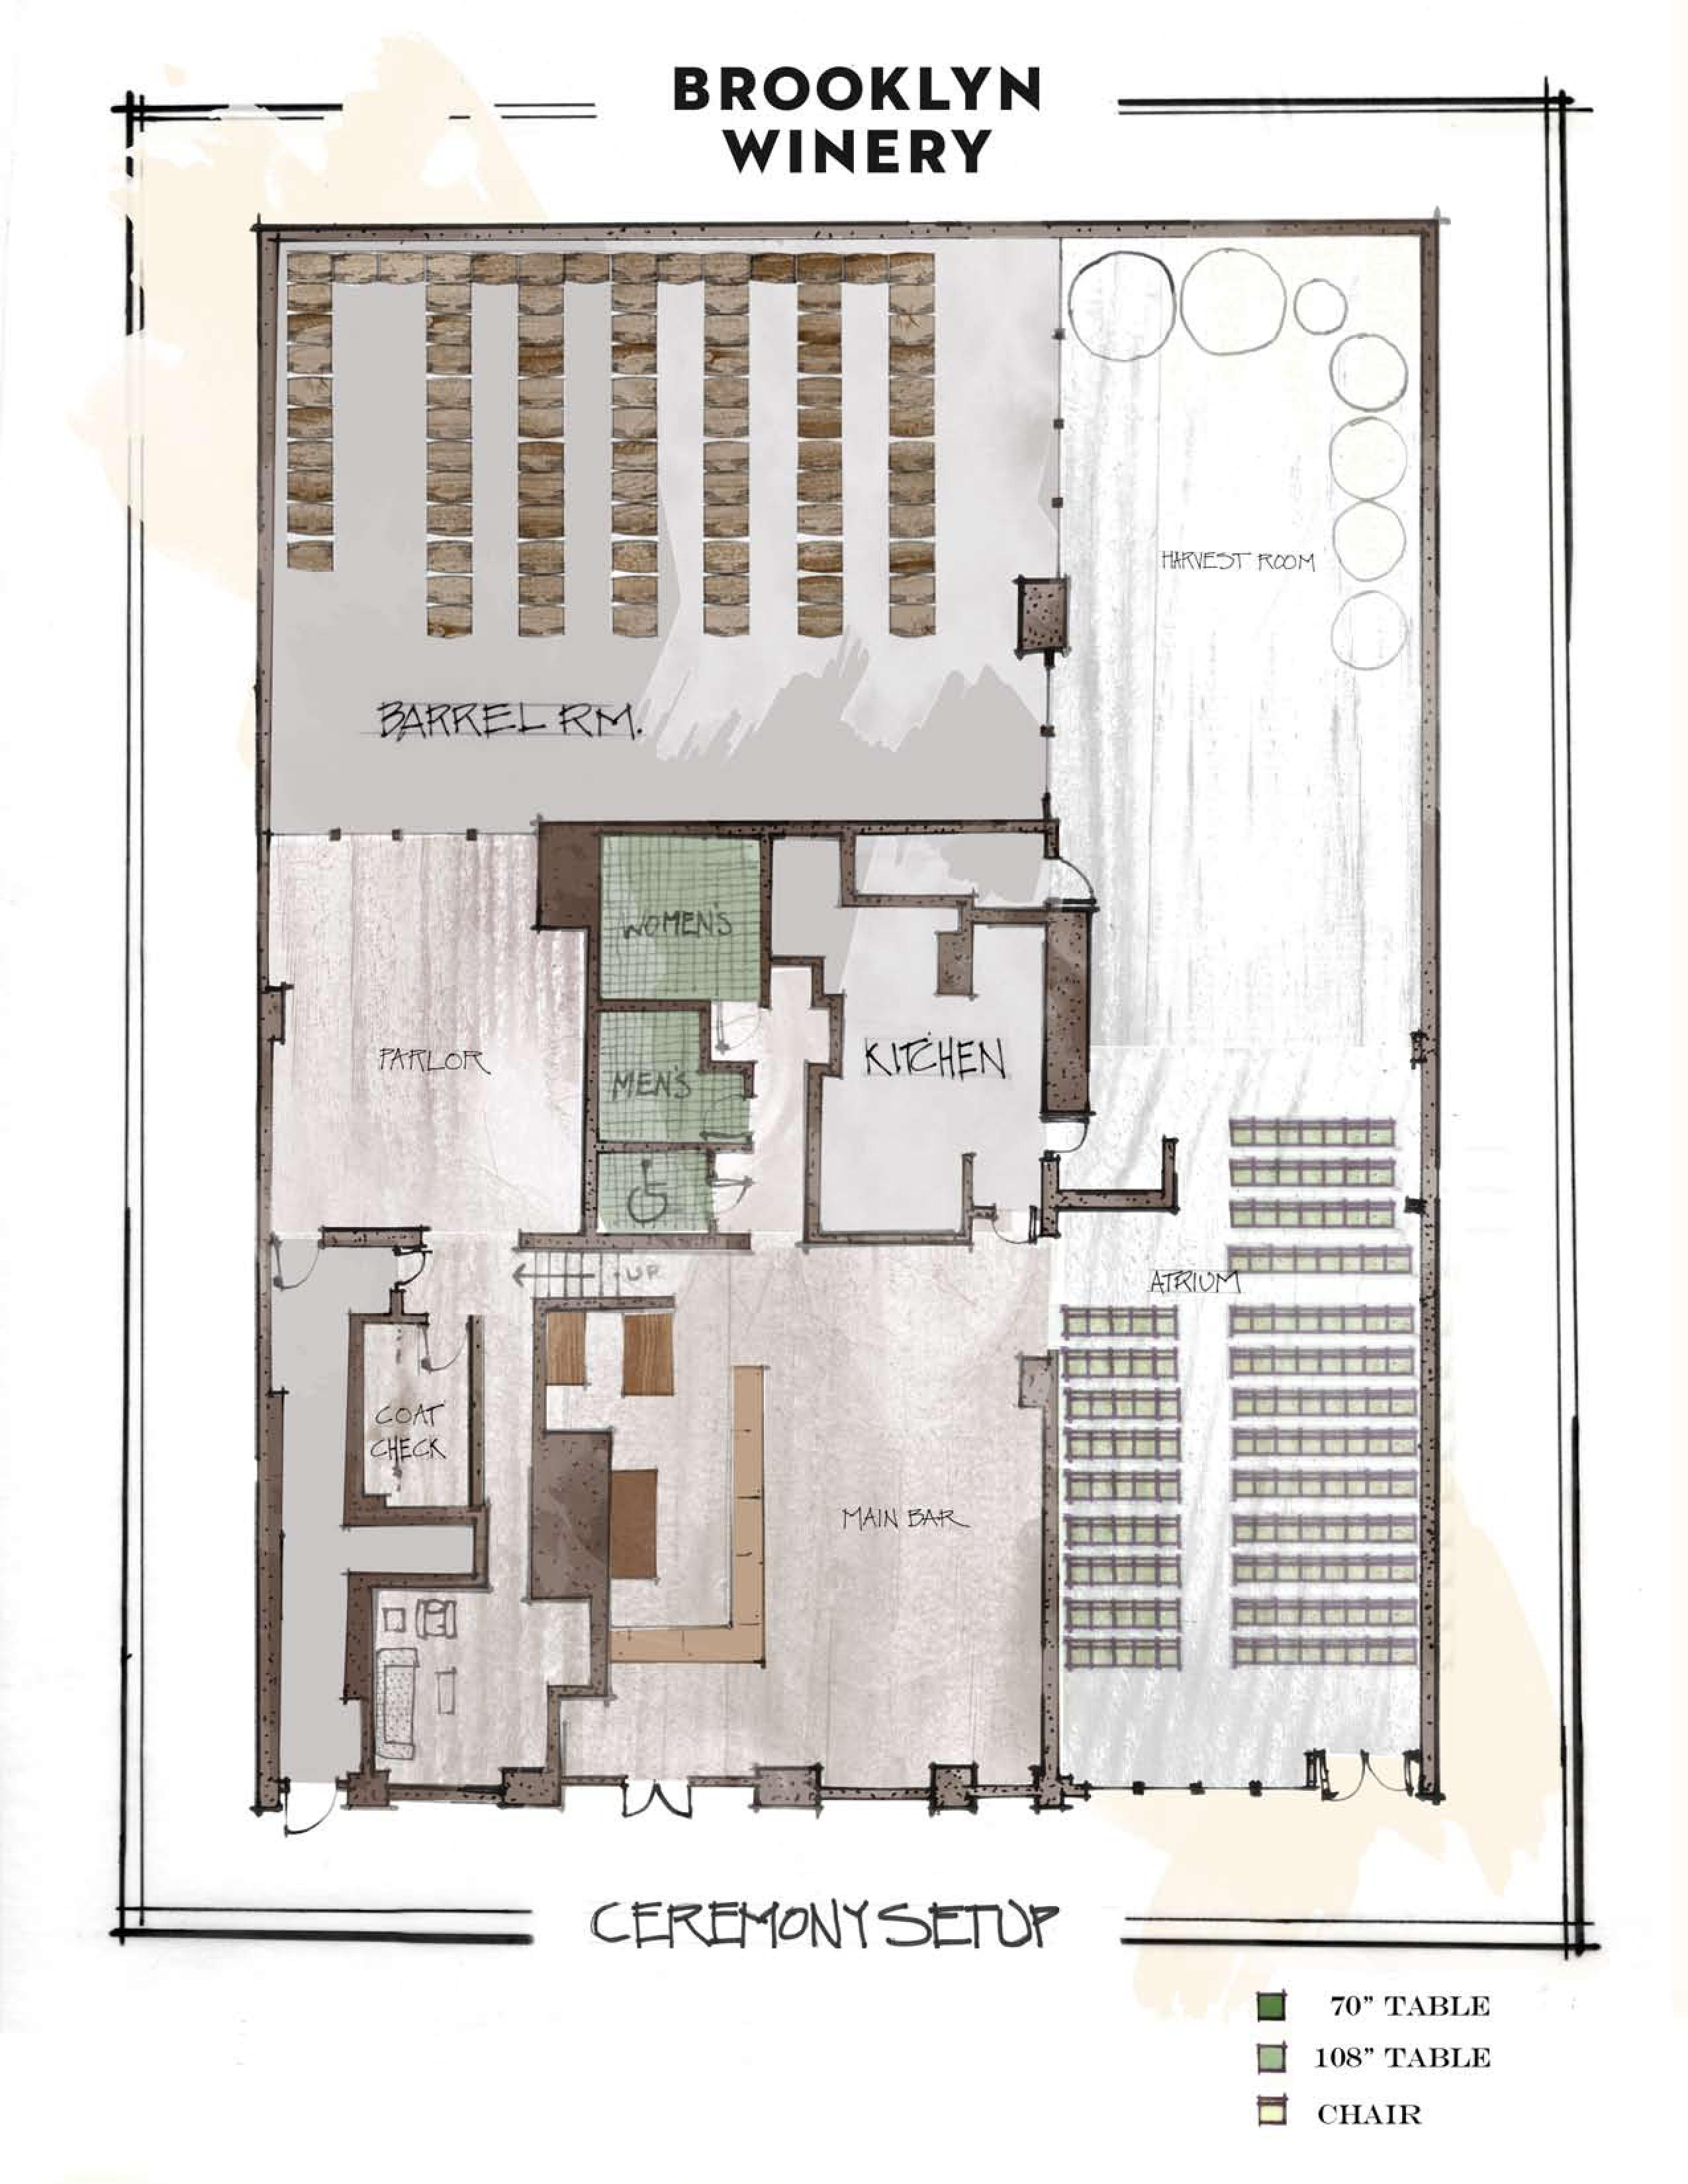 a unique new york wedding venue floorplans